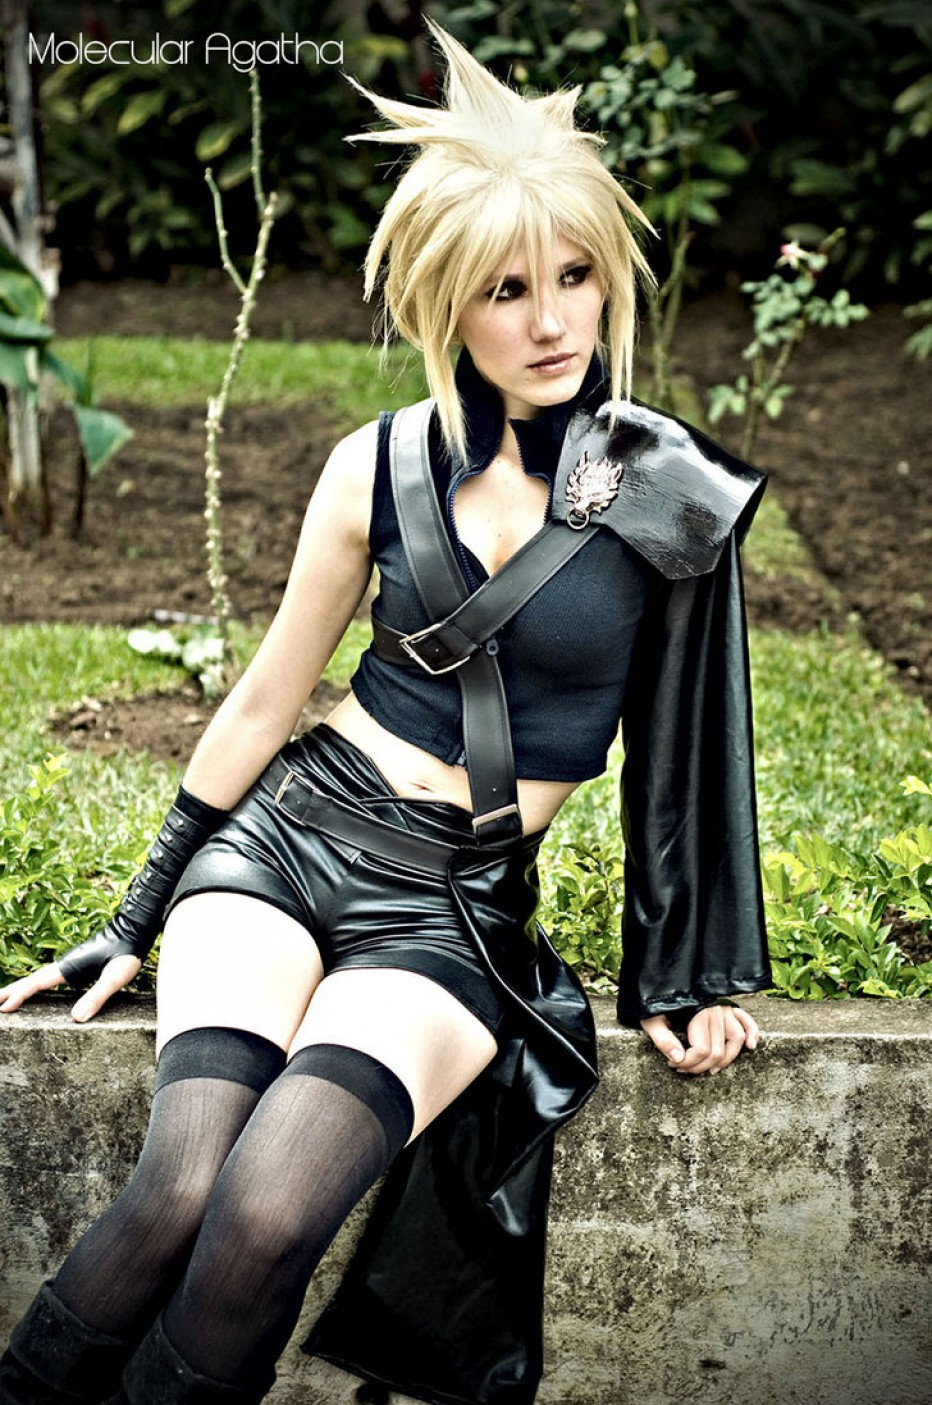 Final-Fantasy-VII-Cosplay-3-Gamers-Heroes.jpg